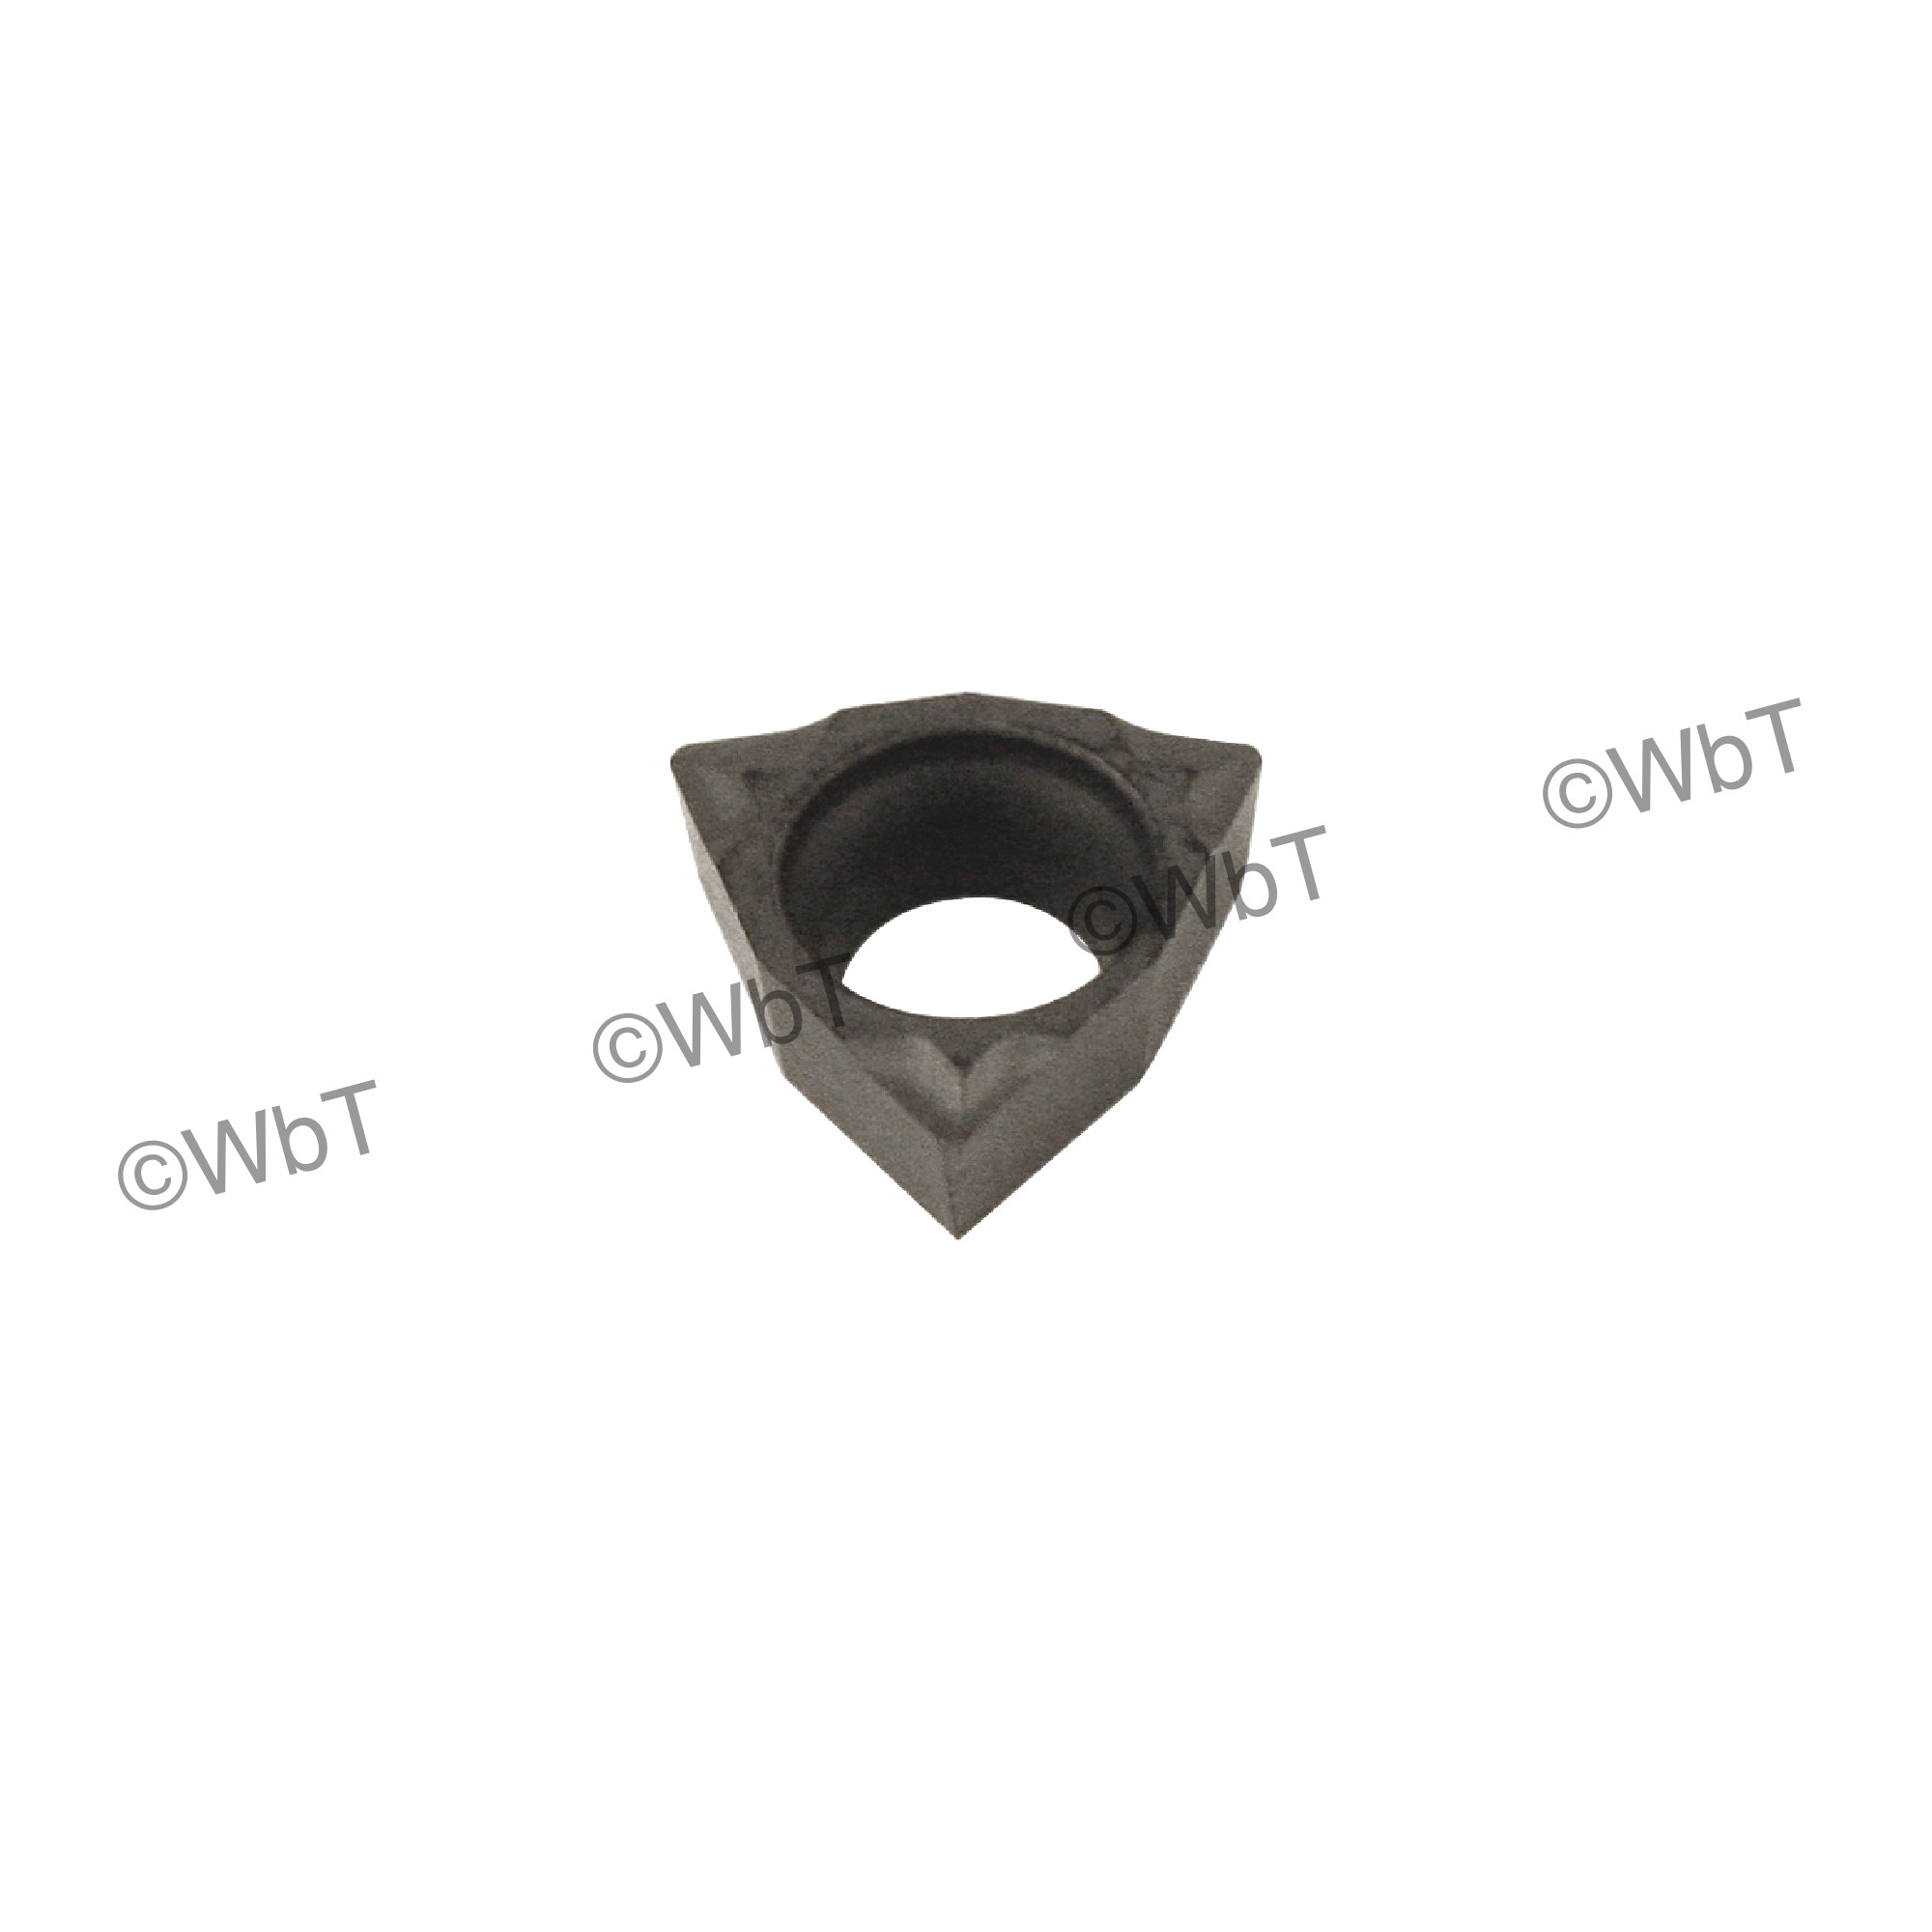 EVEREDE - WCGT-008 TL120 - 80° Trigon / Indexable Carbide Turning Insert